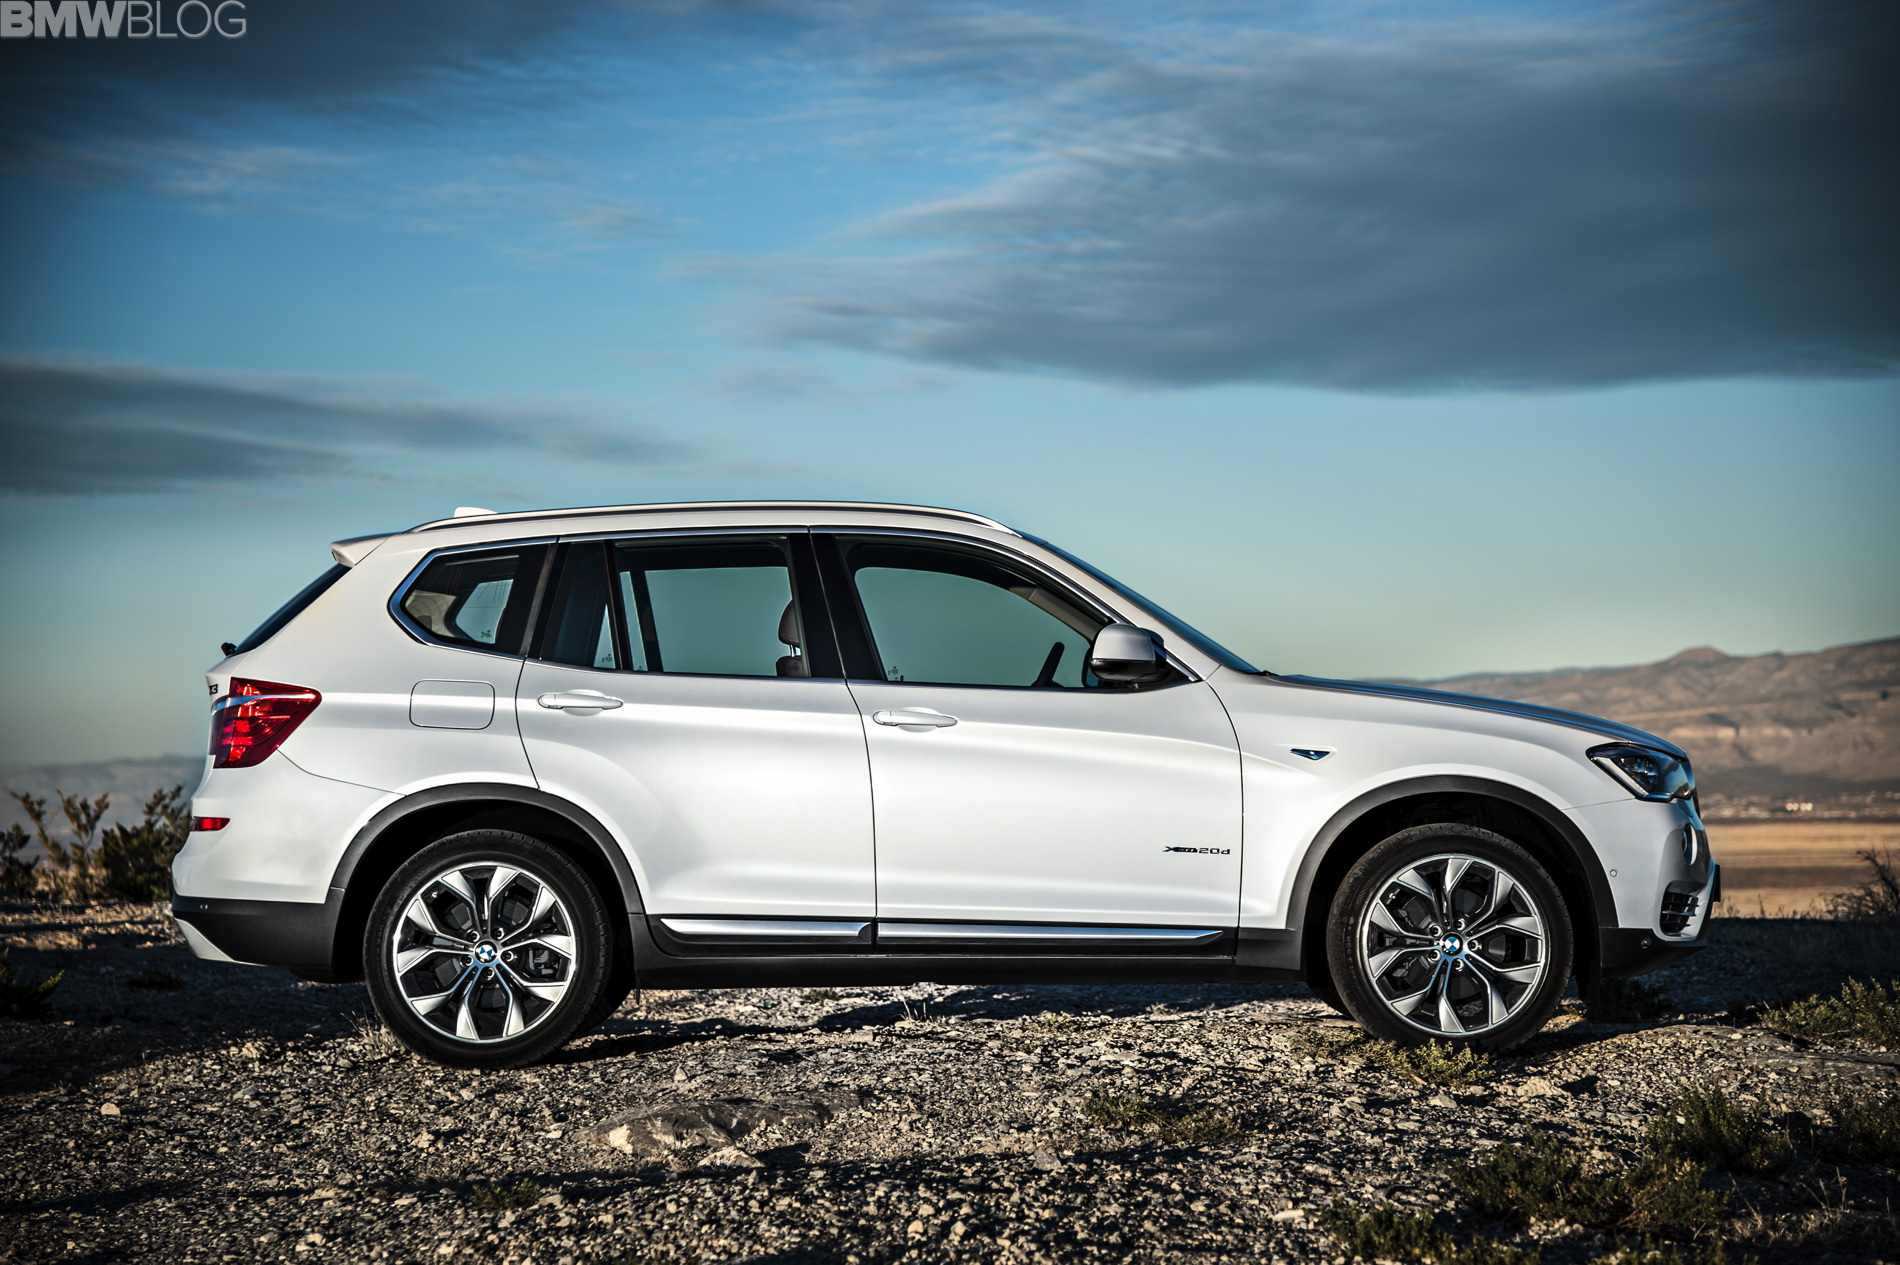 Volkswagen European Delivery >> BMW X3 and BMW X4: extended standard equipment, new ...